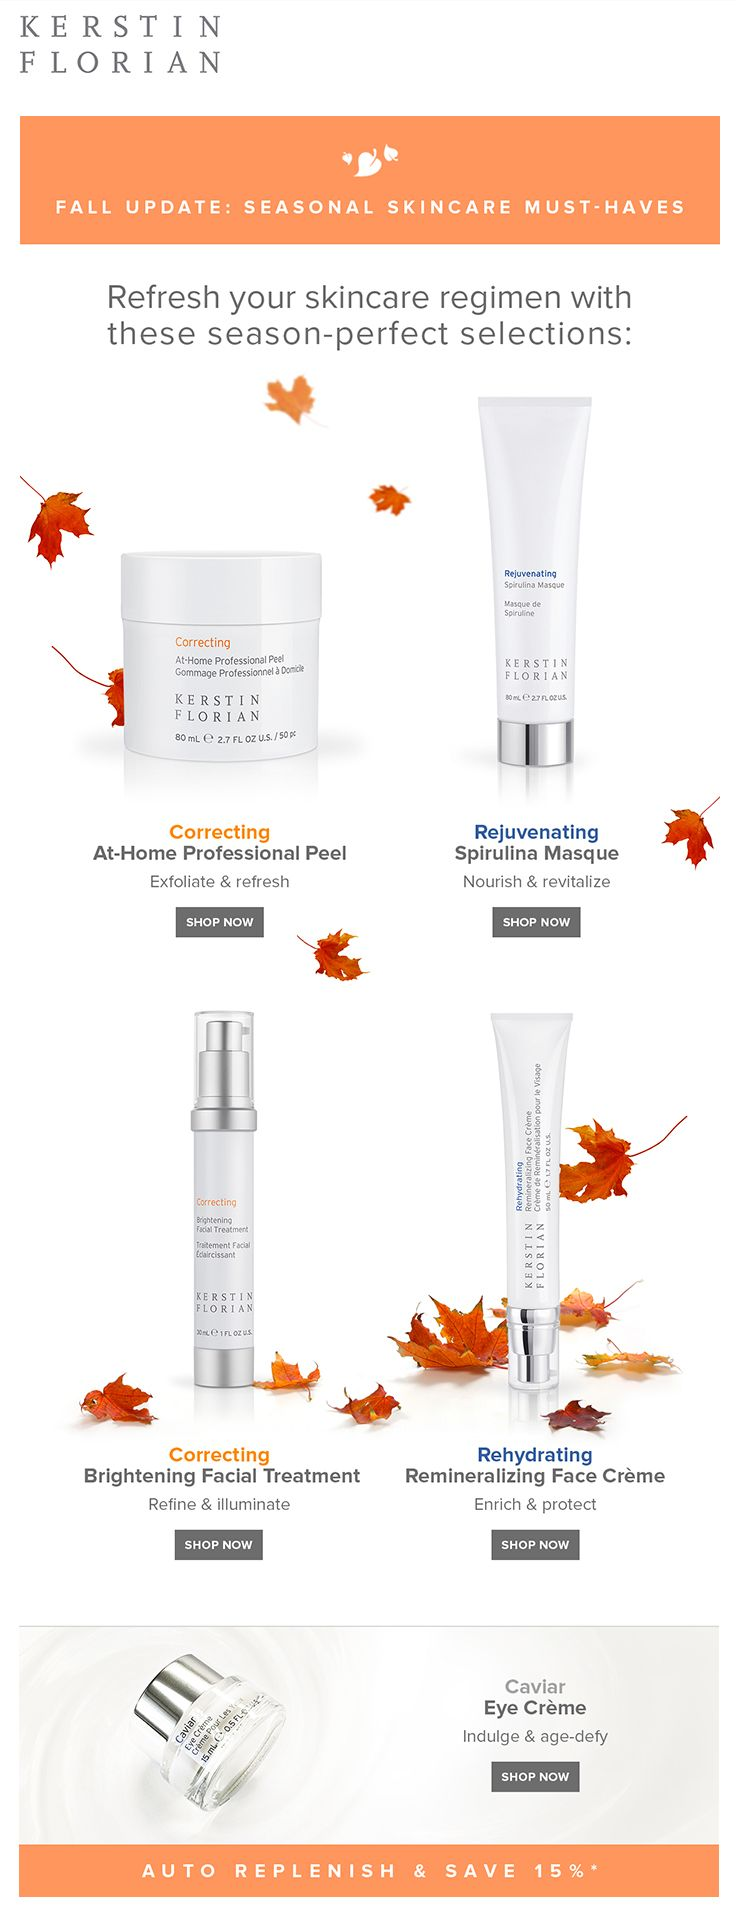 Kerstin Florian fall skin care email. 5 Fall Skincare Must-Haves!